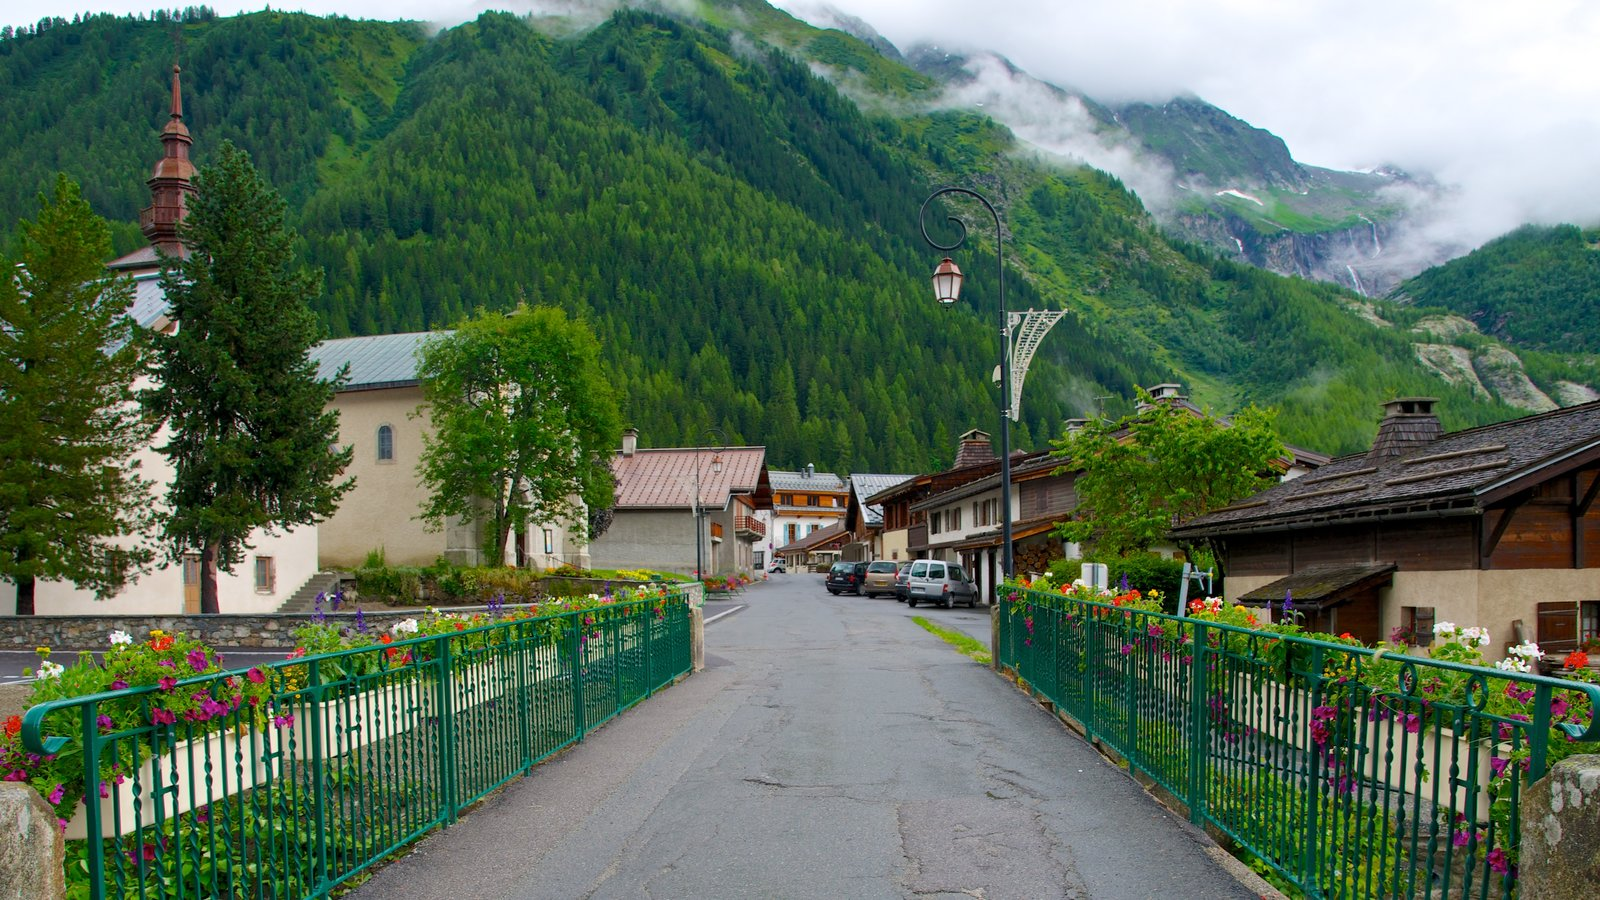 Argentiere featuring mountains, a small town or village and street scenes